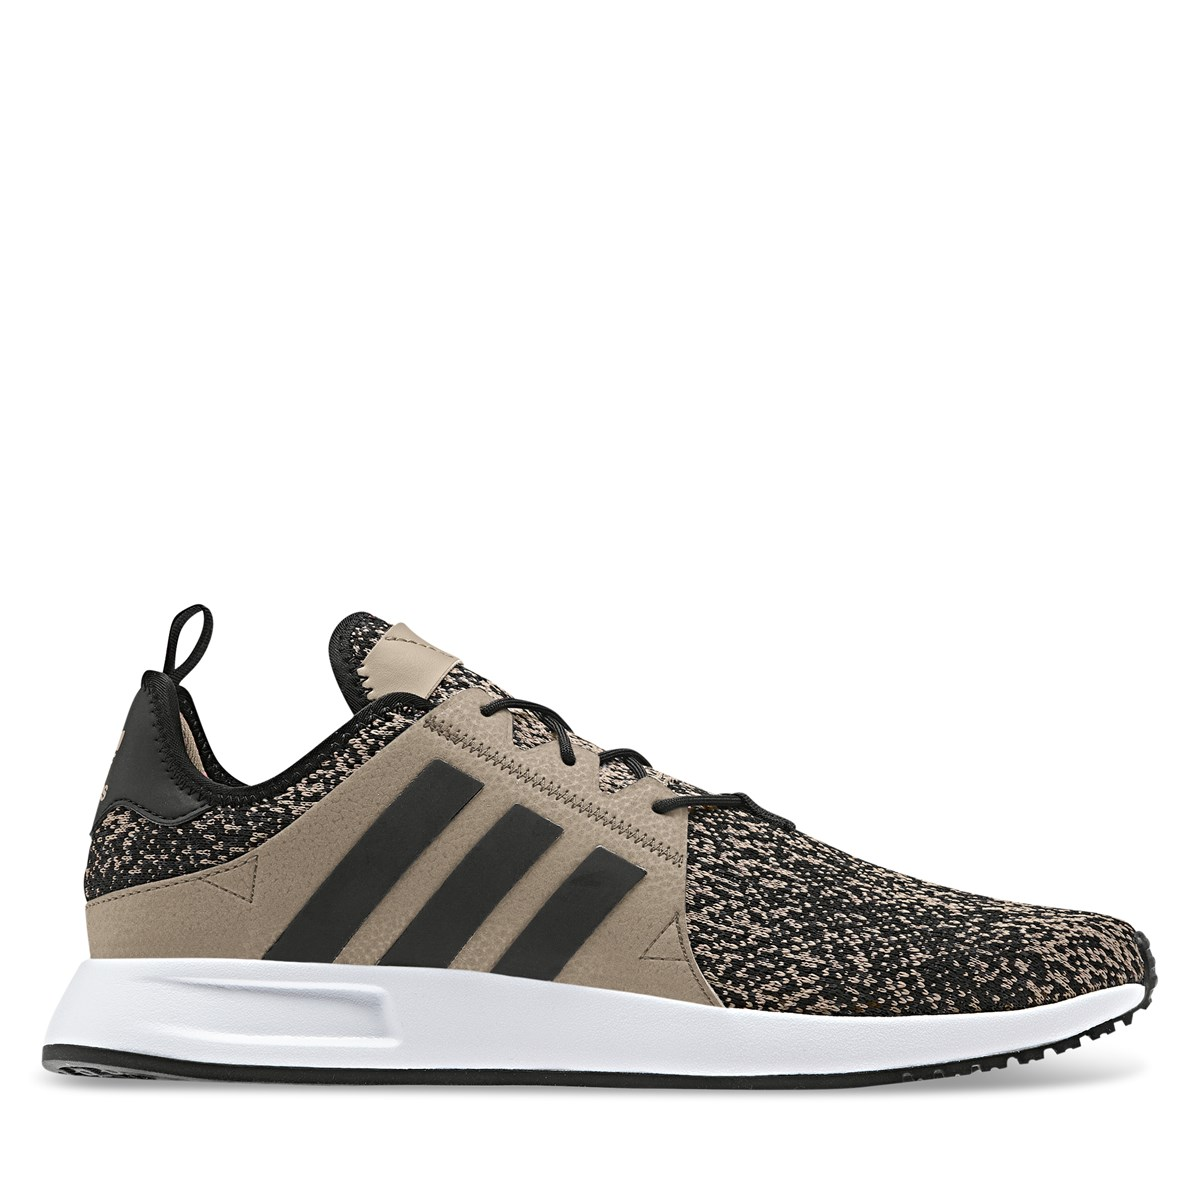 Men's X_PLR Sneakers in Khaki